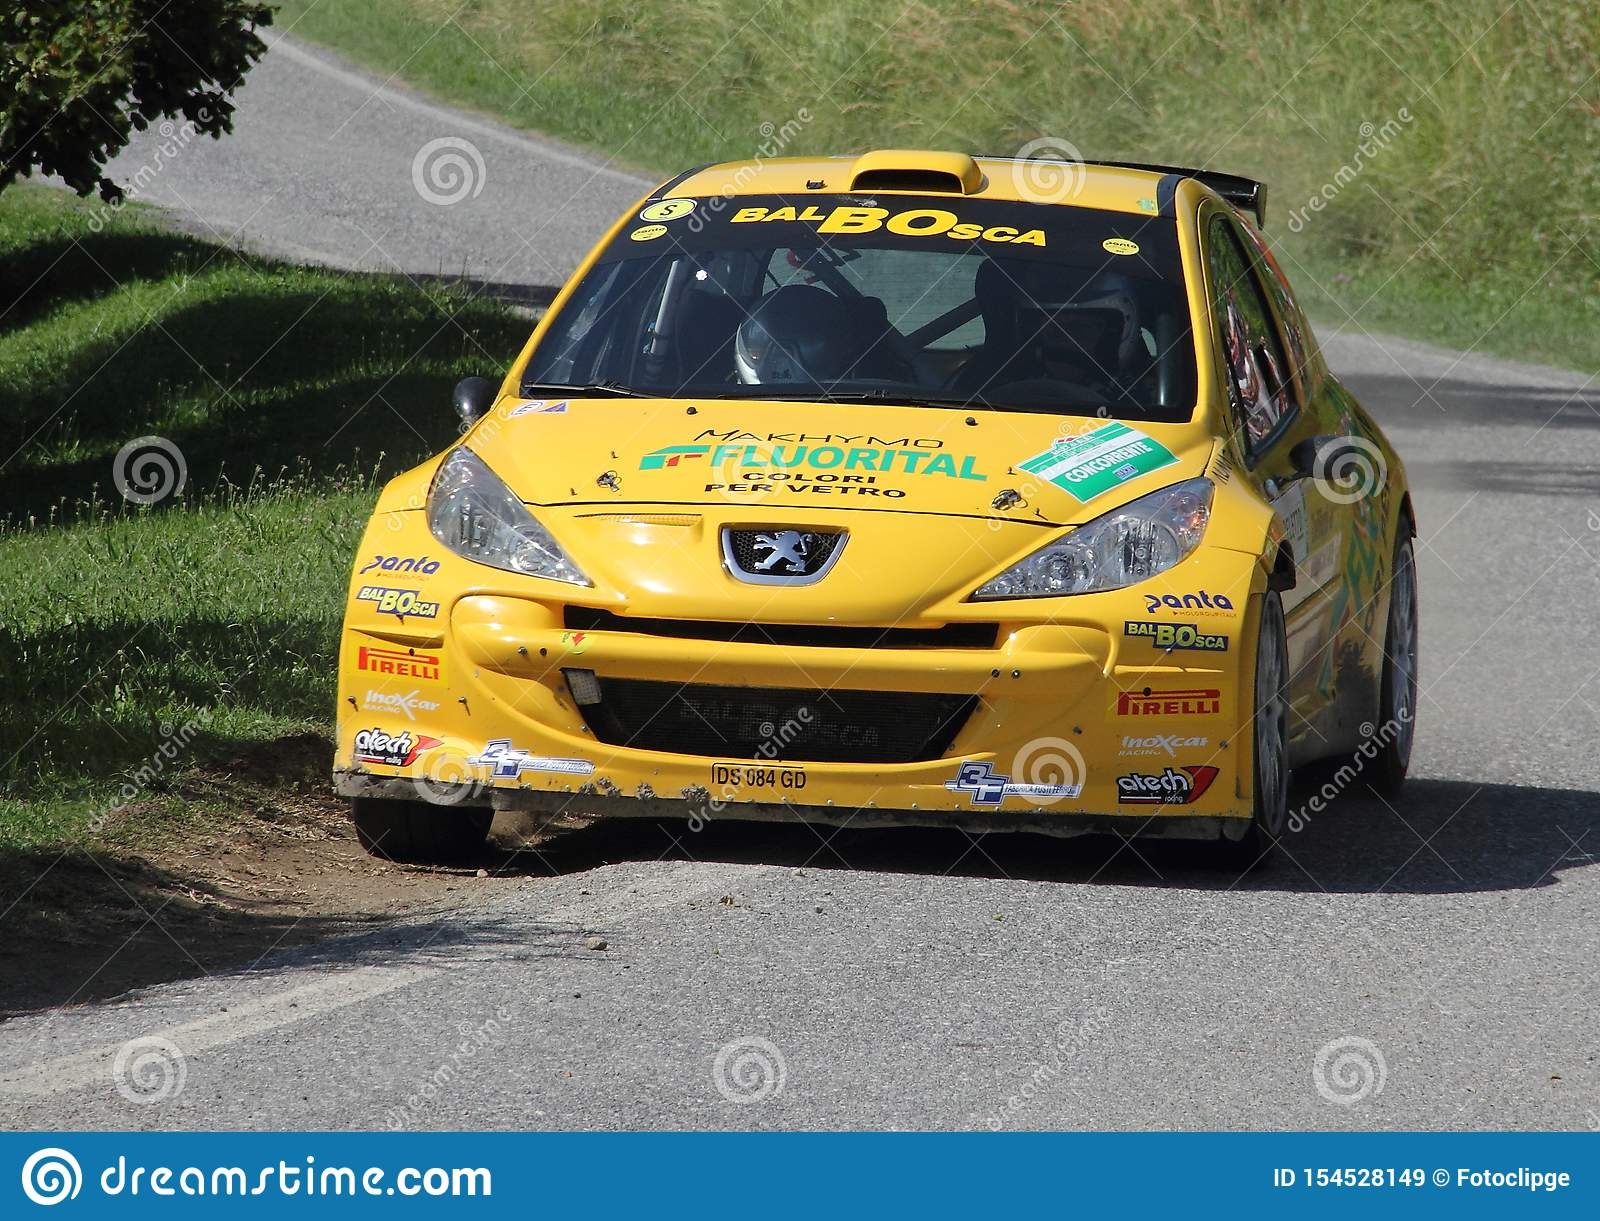 1 253 Peugeot Rally Car Photos Free Royalty Free Stock Photos From Dreamstime